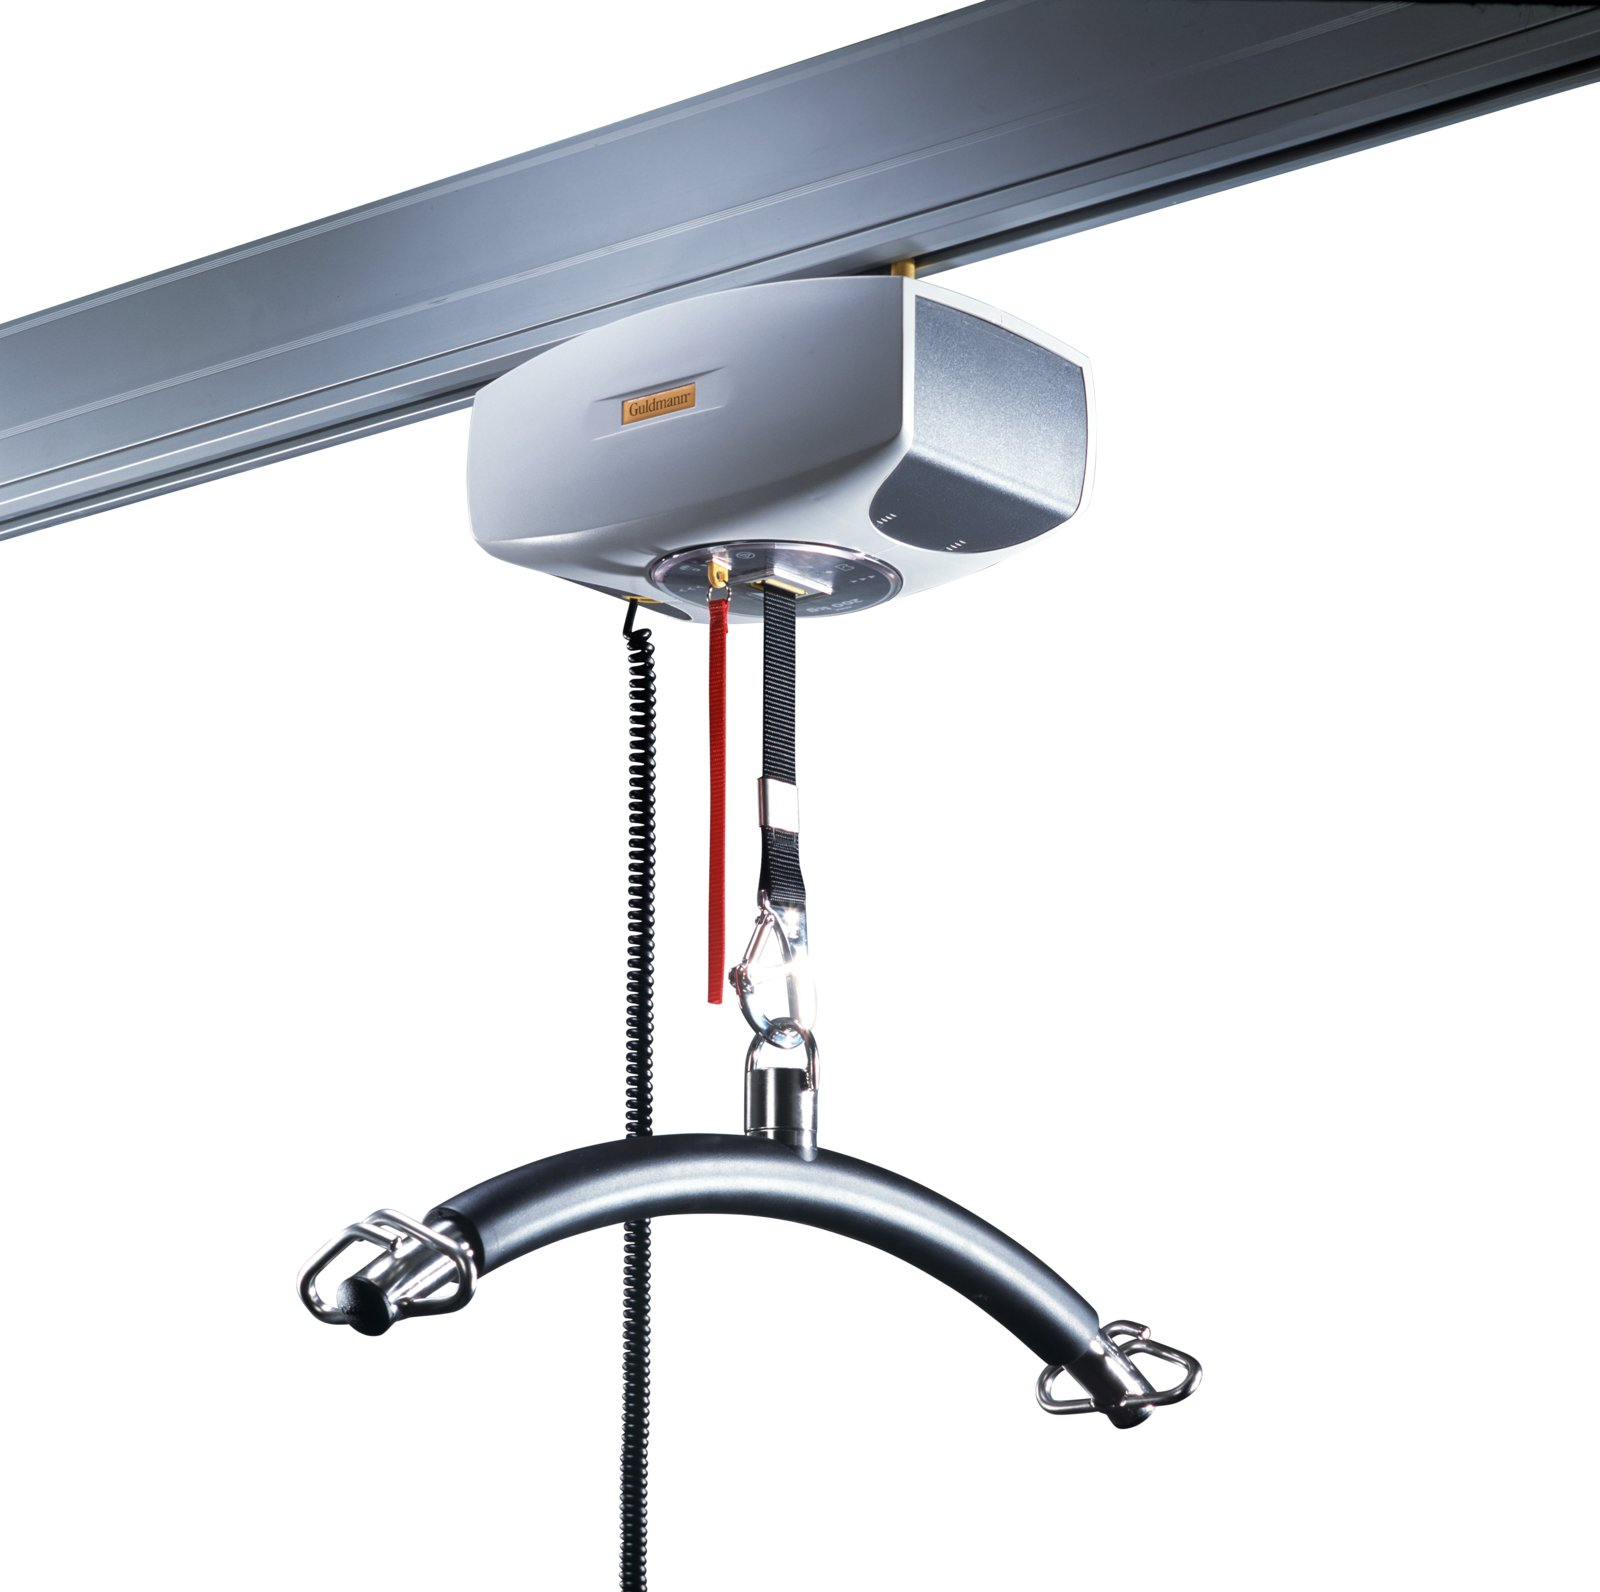 AssistData  GH2 Ceiling hoist system from Guldmann AS